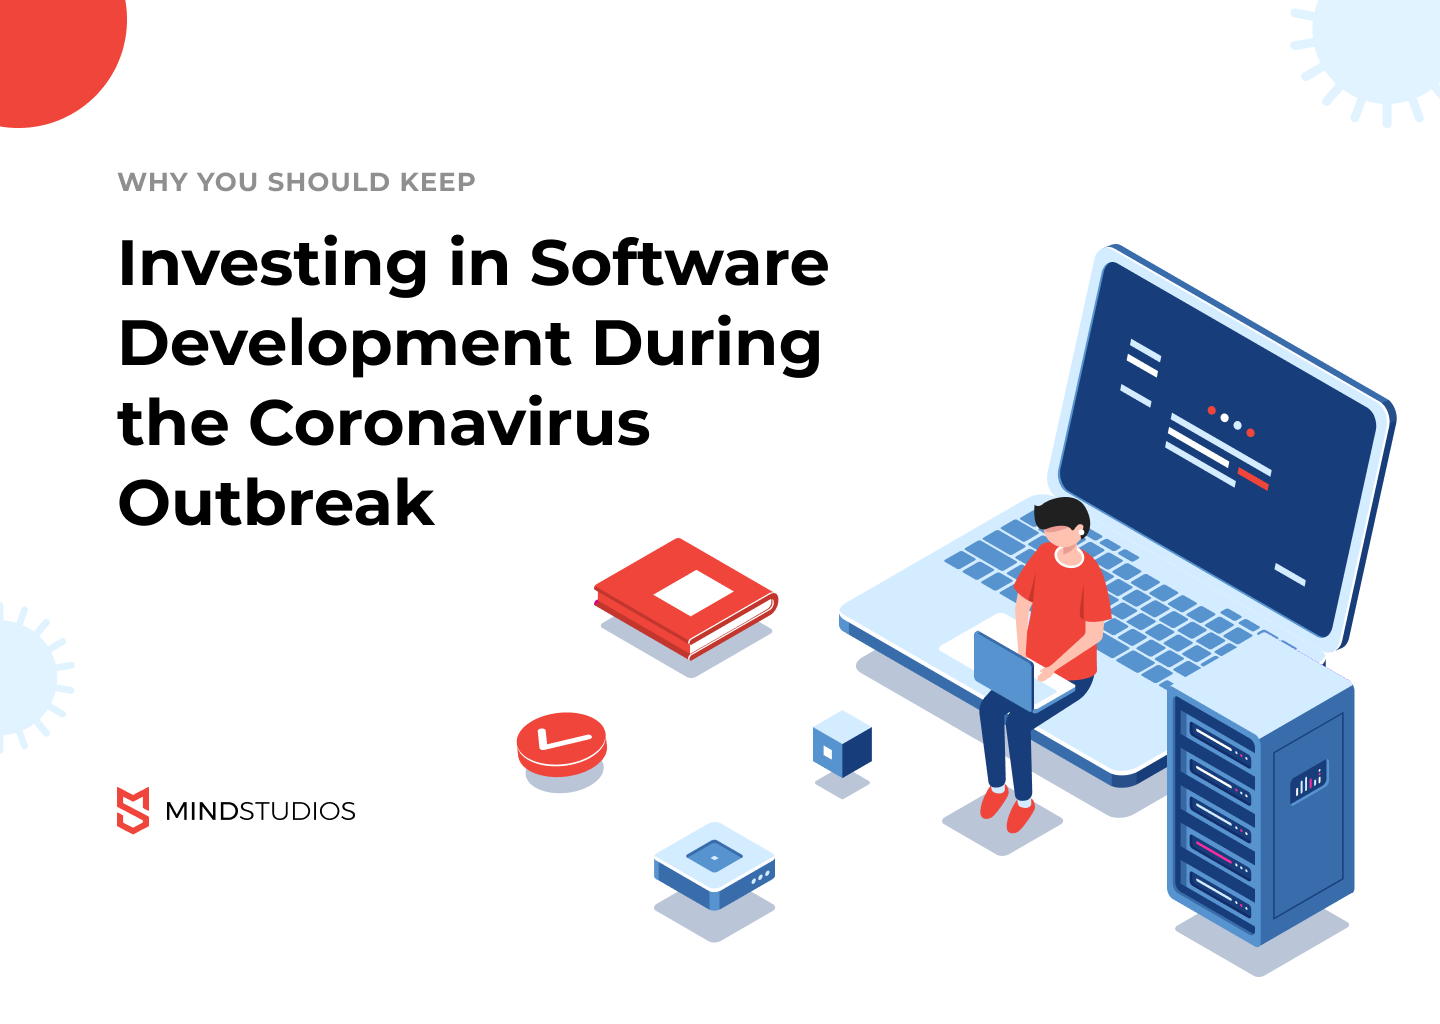 Investing in Software Development During the Coronavirus Outbreak